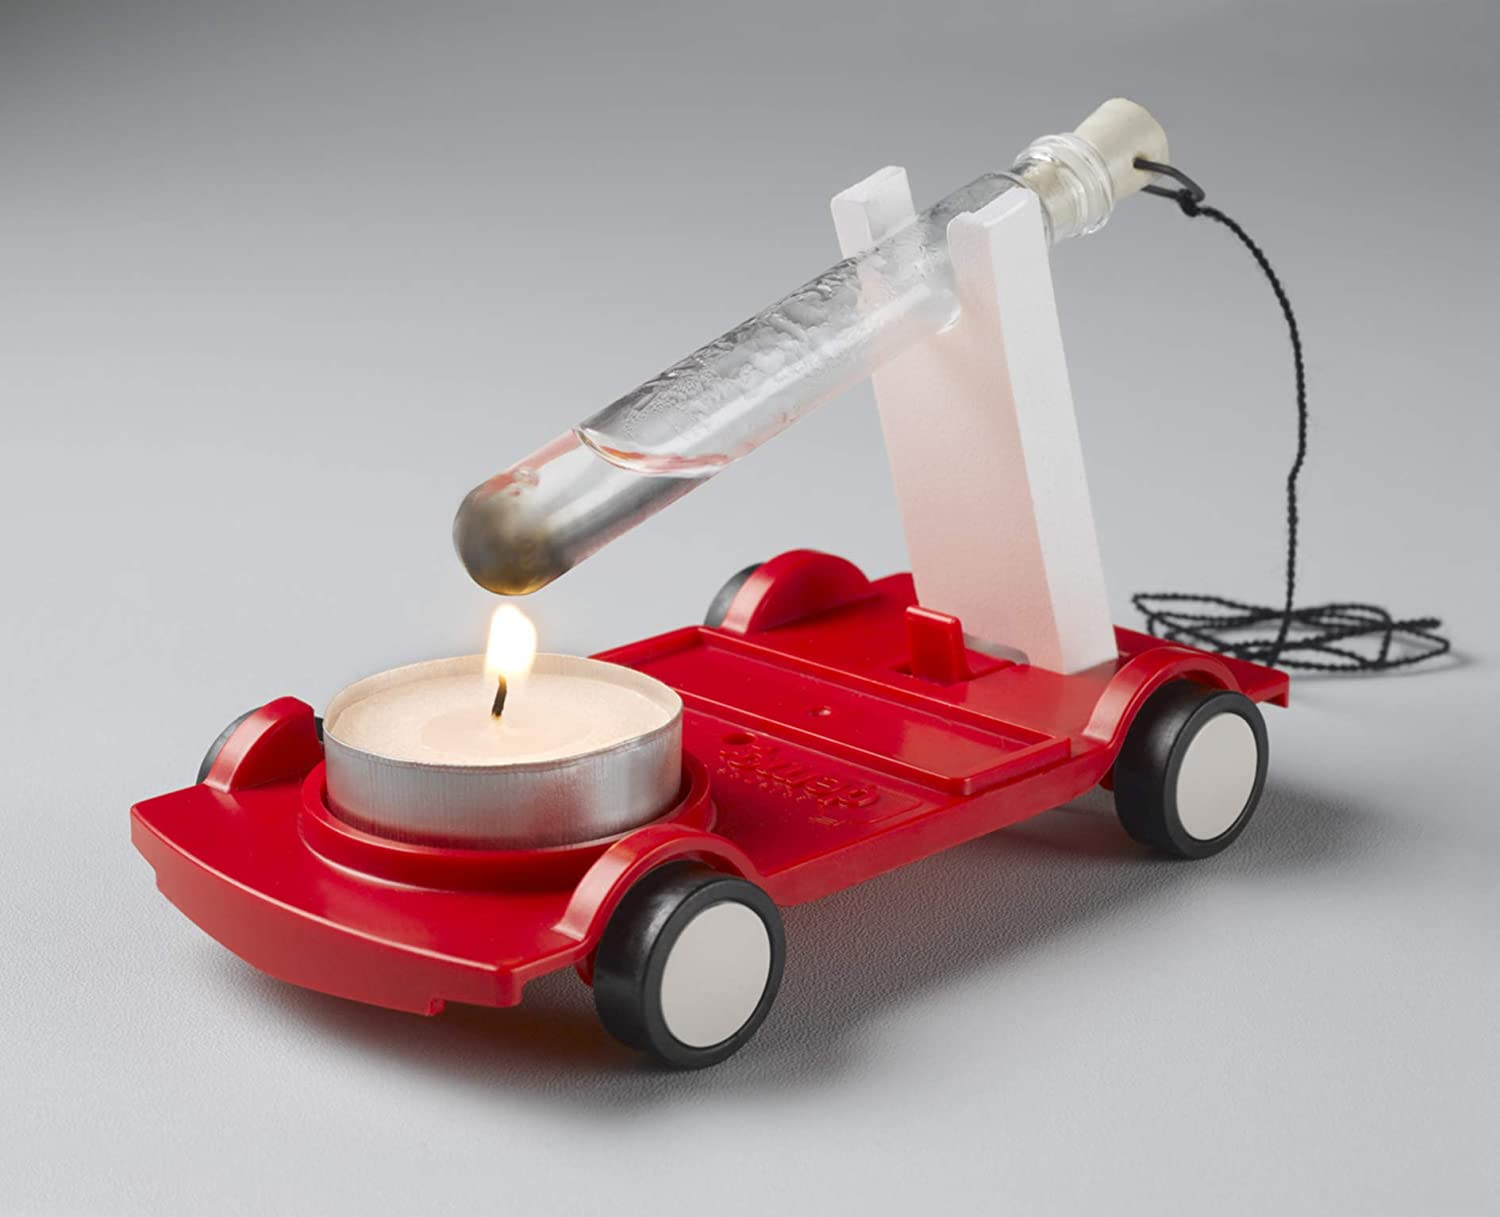 American Educational Products 6-1131-00 The Steam Cannon Labless lab Kits